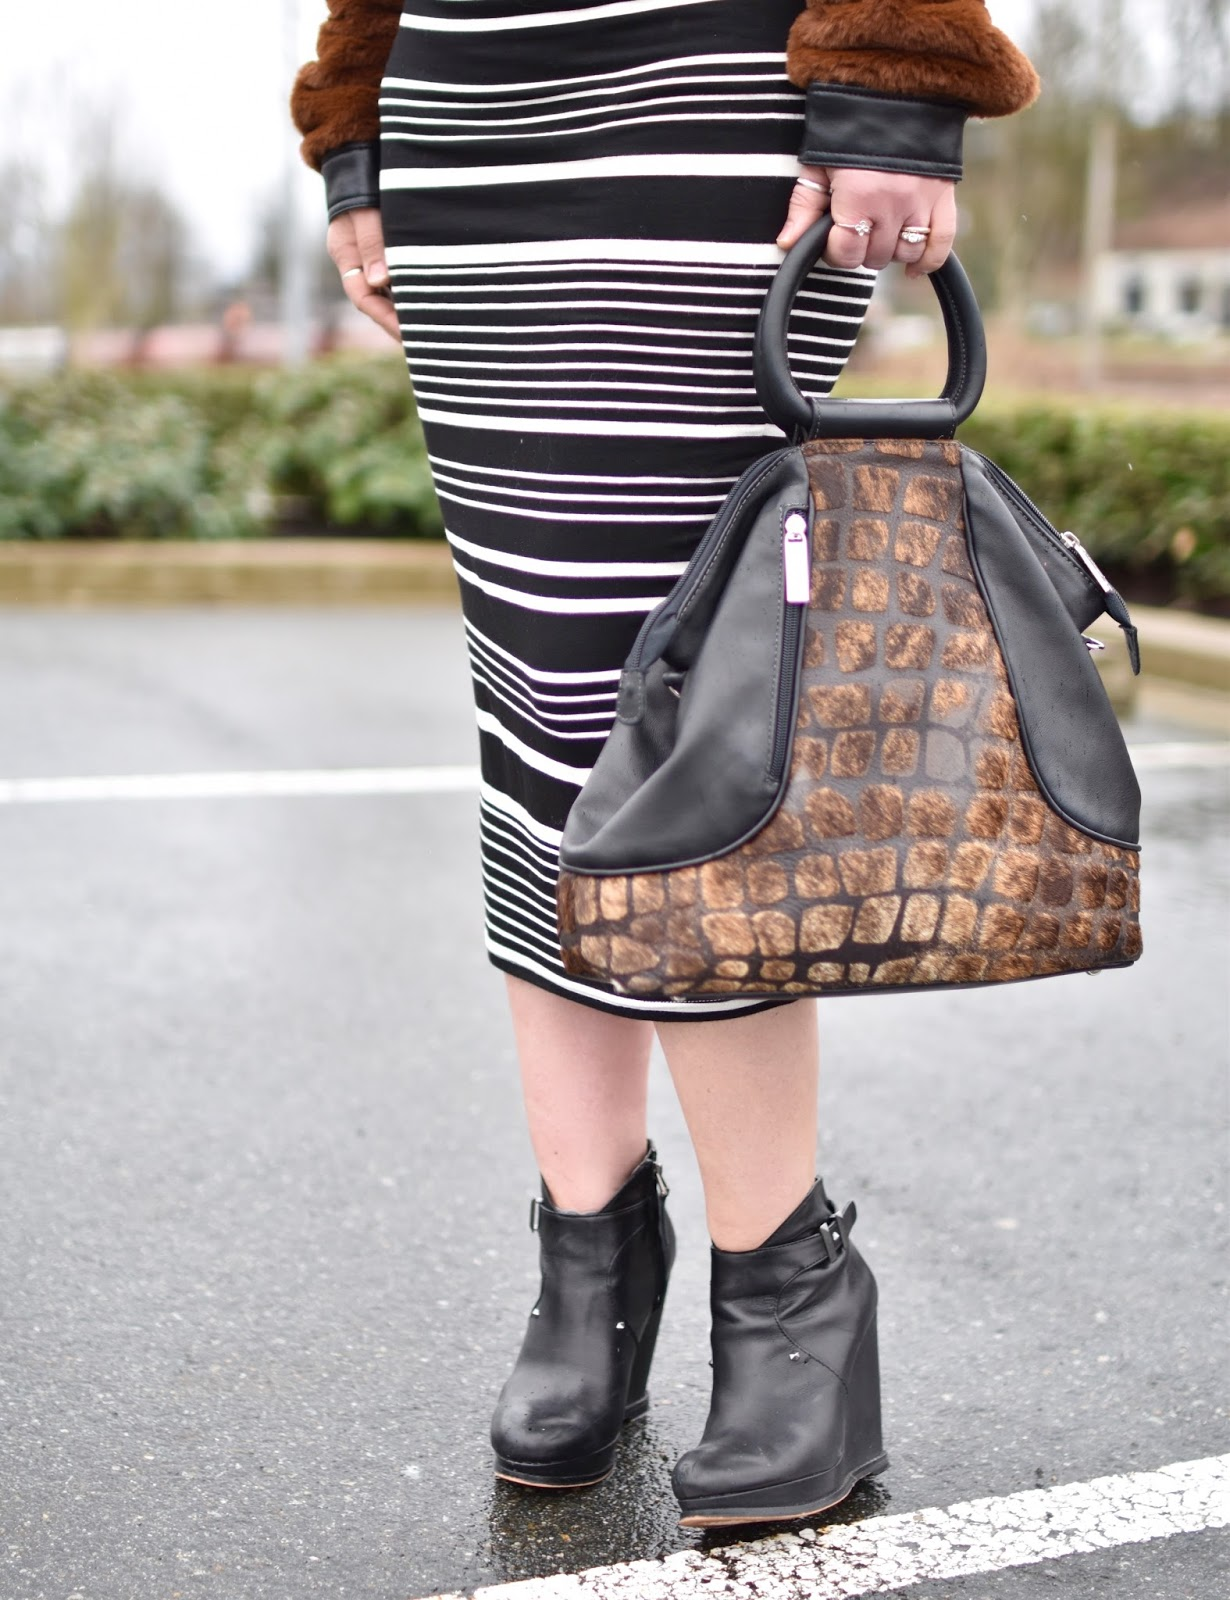 Monika Faulkner outfit inspiration - striped midi-length pencil skirt, black wedge booties, ring-handle bag